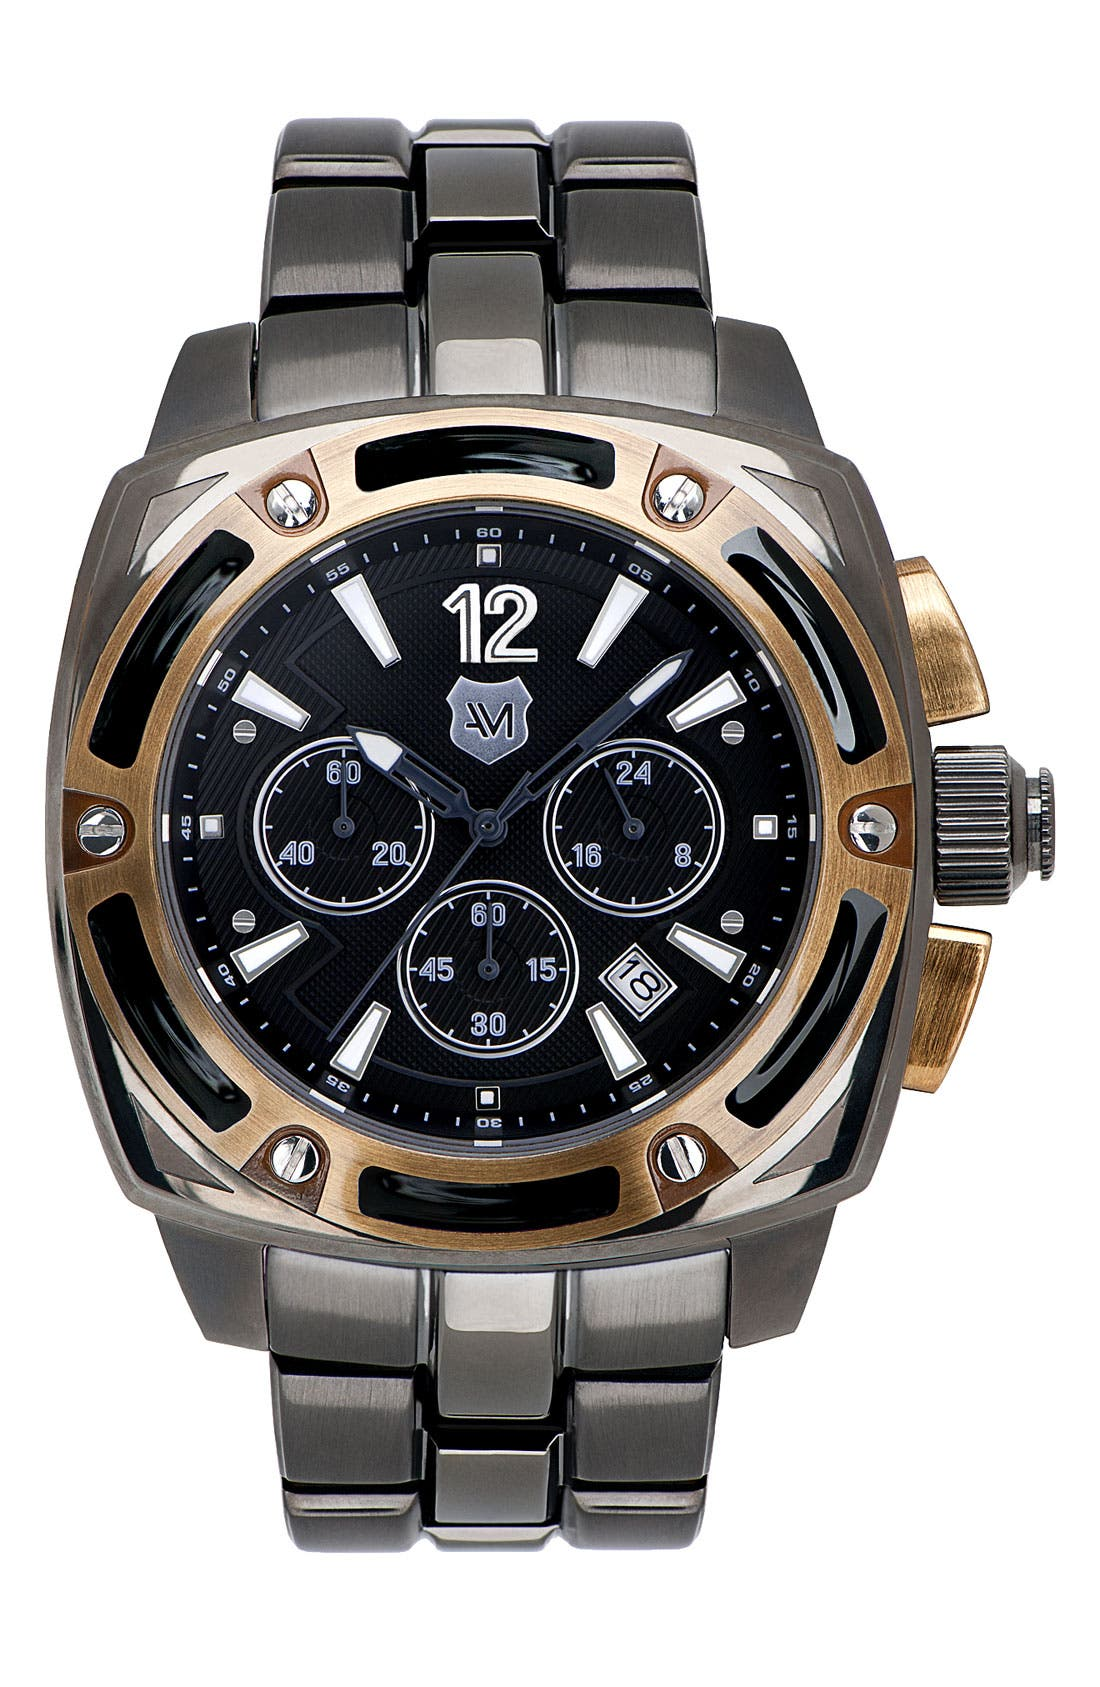 Main Image - Andrew Marc Watches 'G-III Bomber' Chronograph Bracelet Watch, 46mm